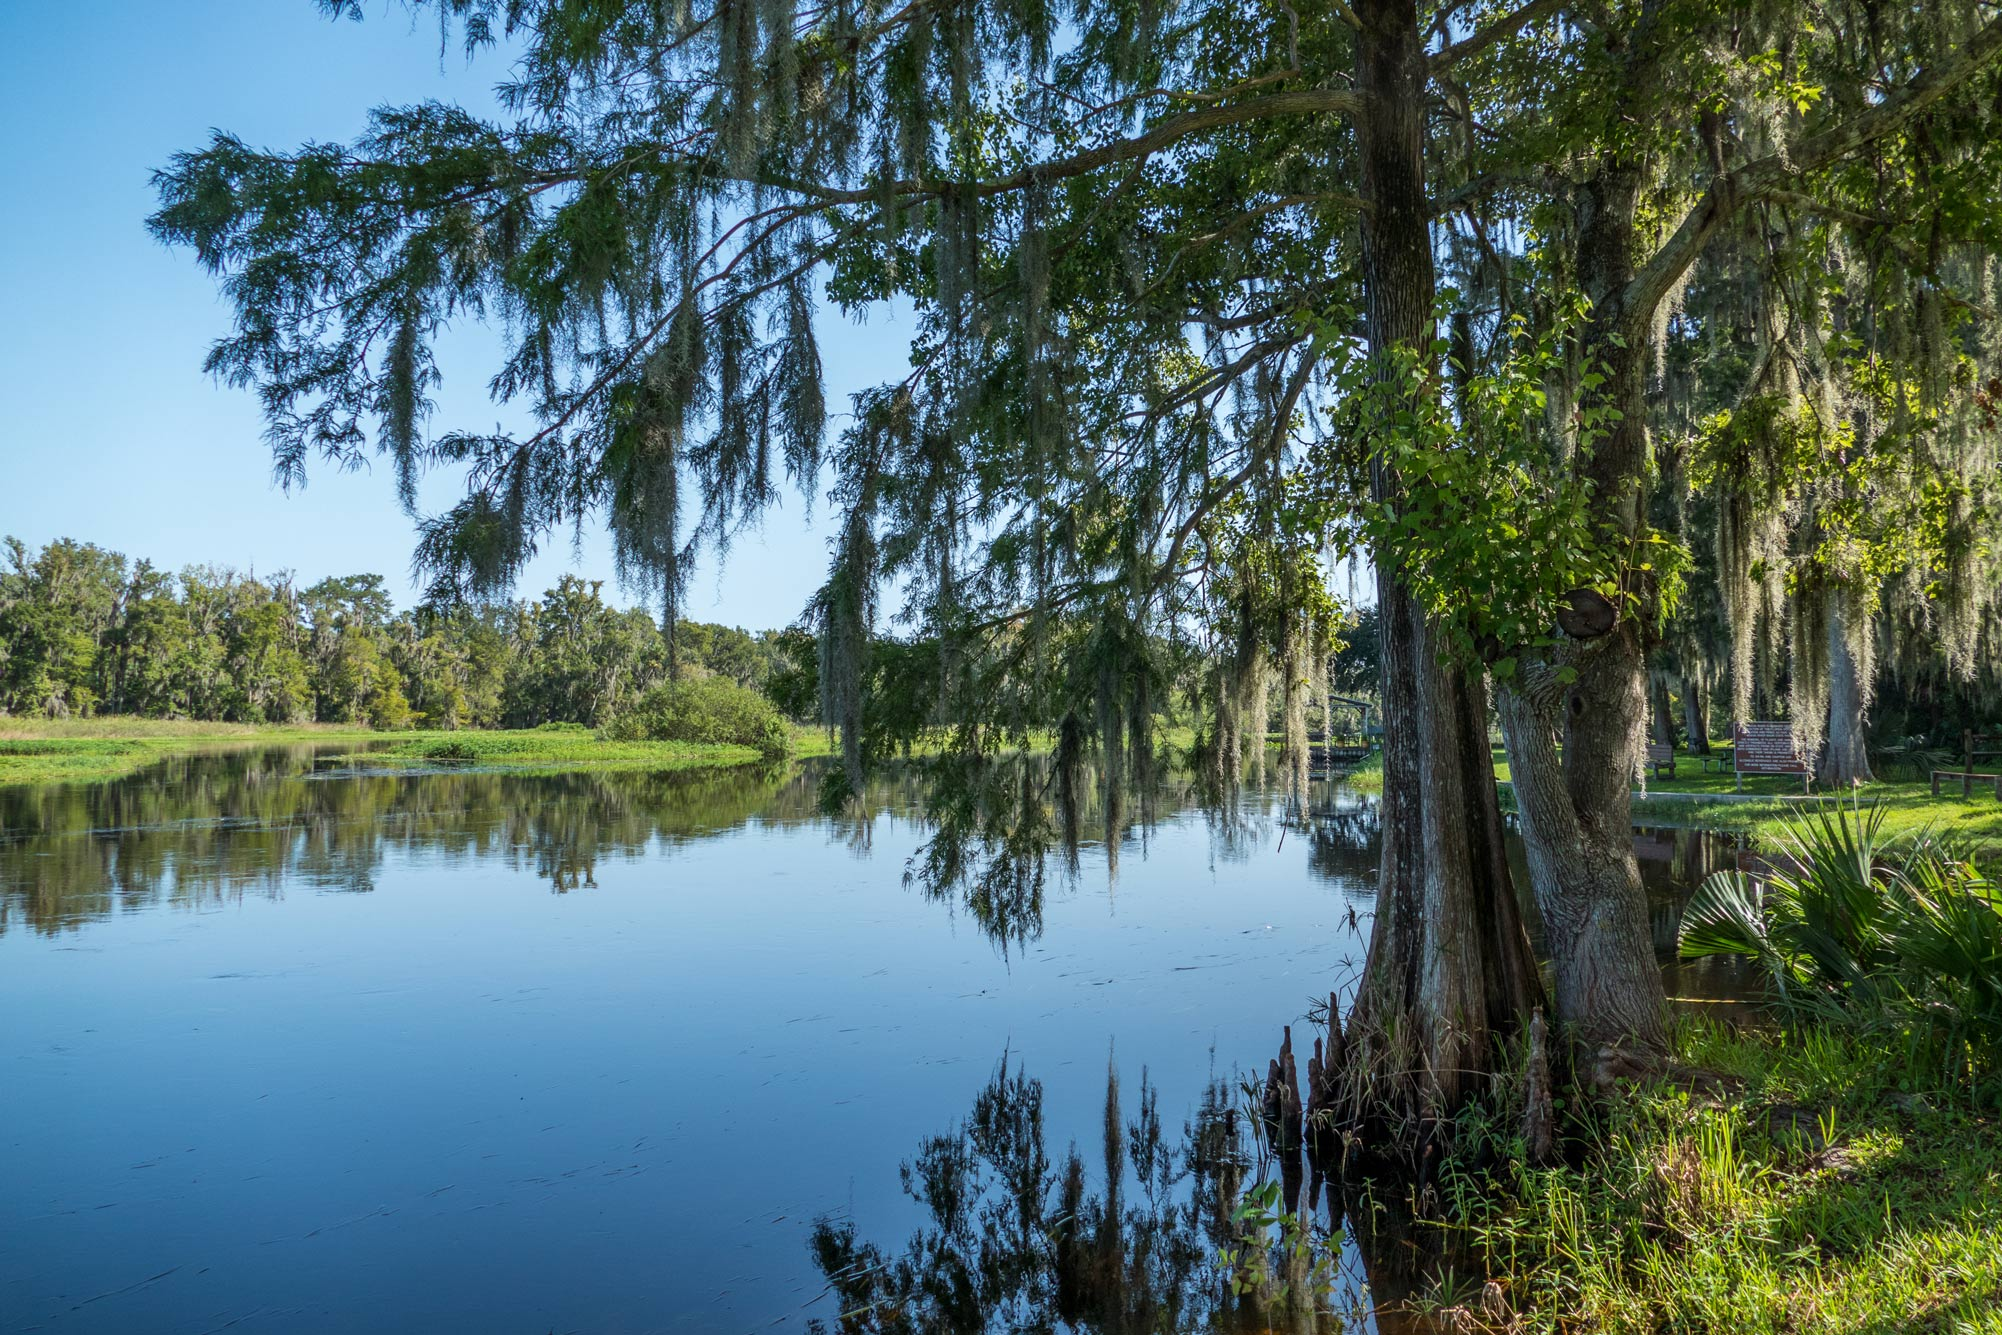 Cypress tree at the shore of Little Wekiva River